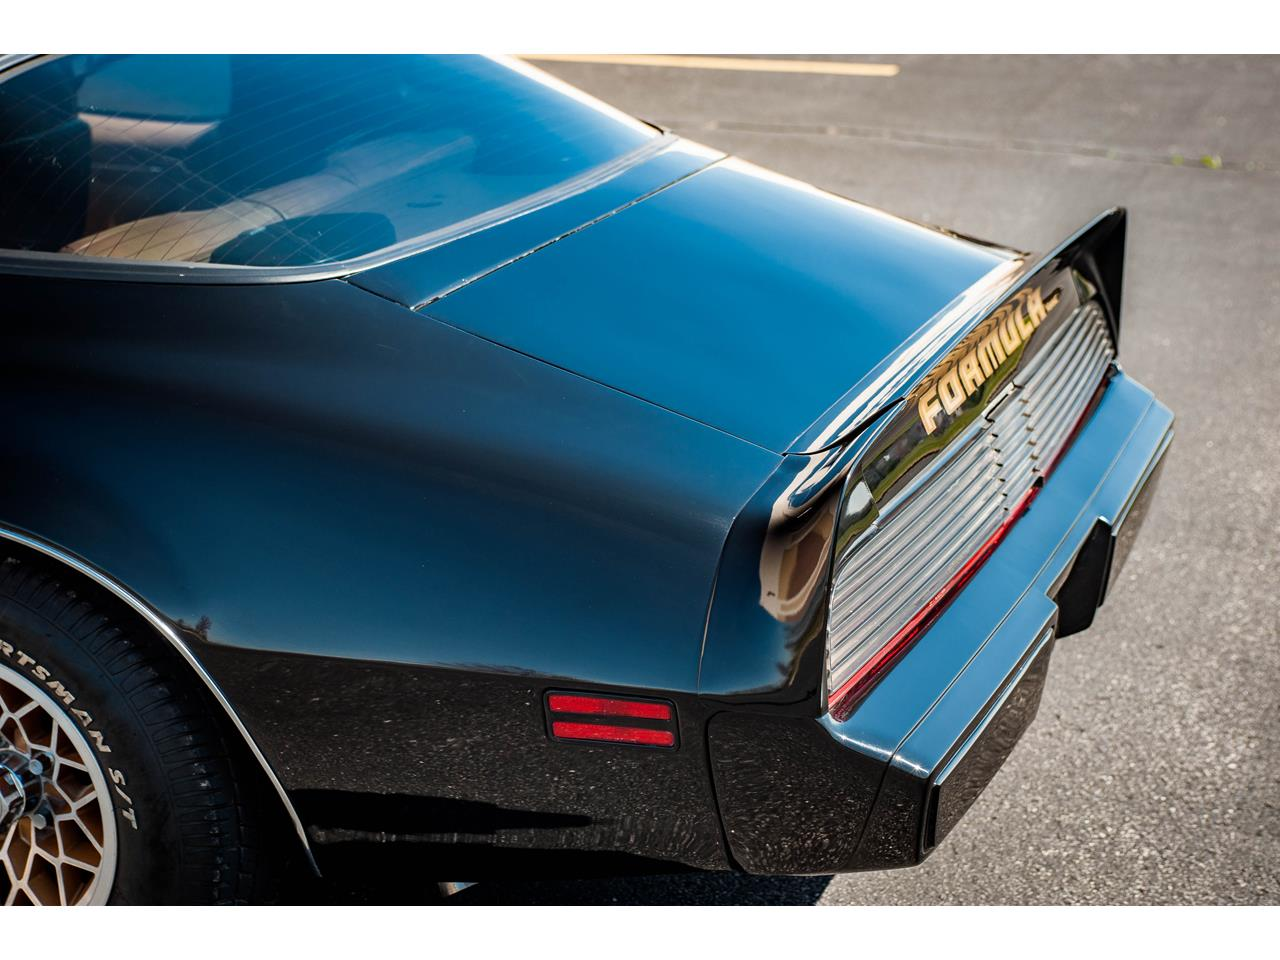 Large Picture of 1979 Pontiac Firebird - $36,500.00 Offered by Gateway Classic Cars - St. Louis - QB8A